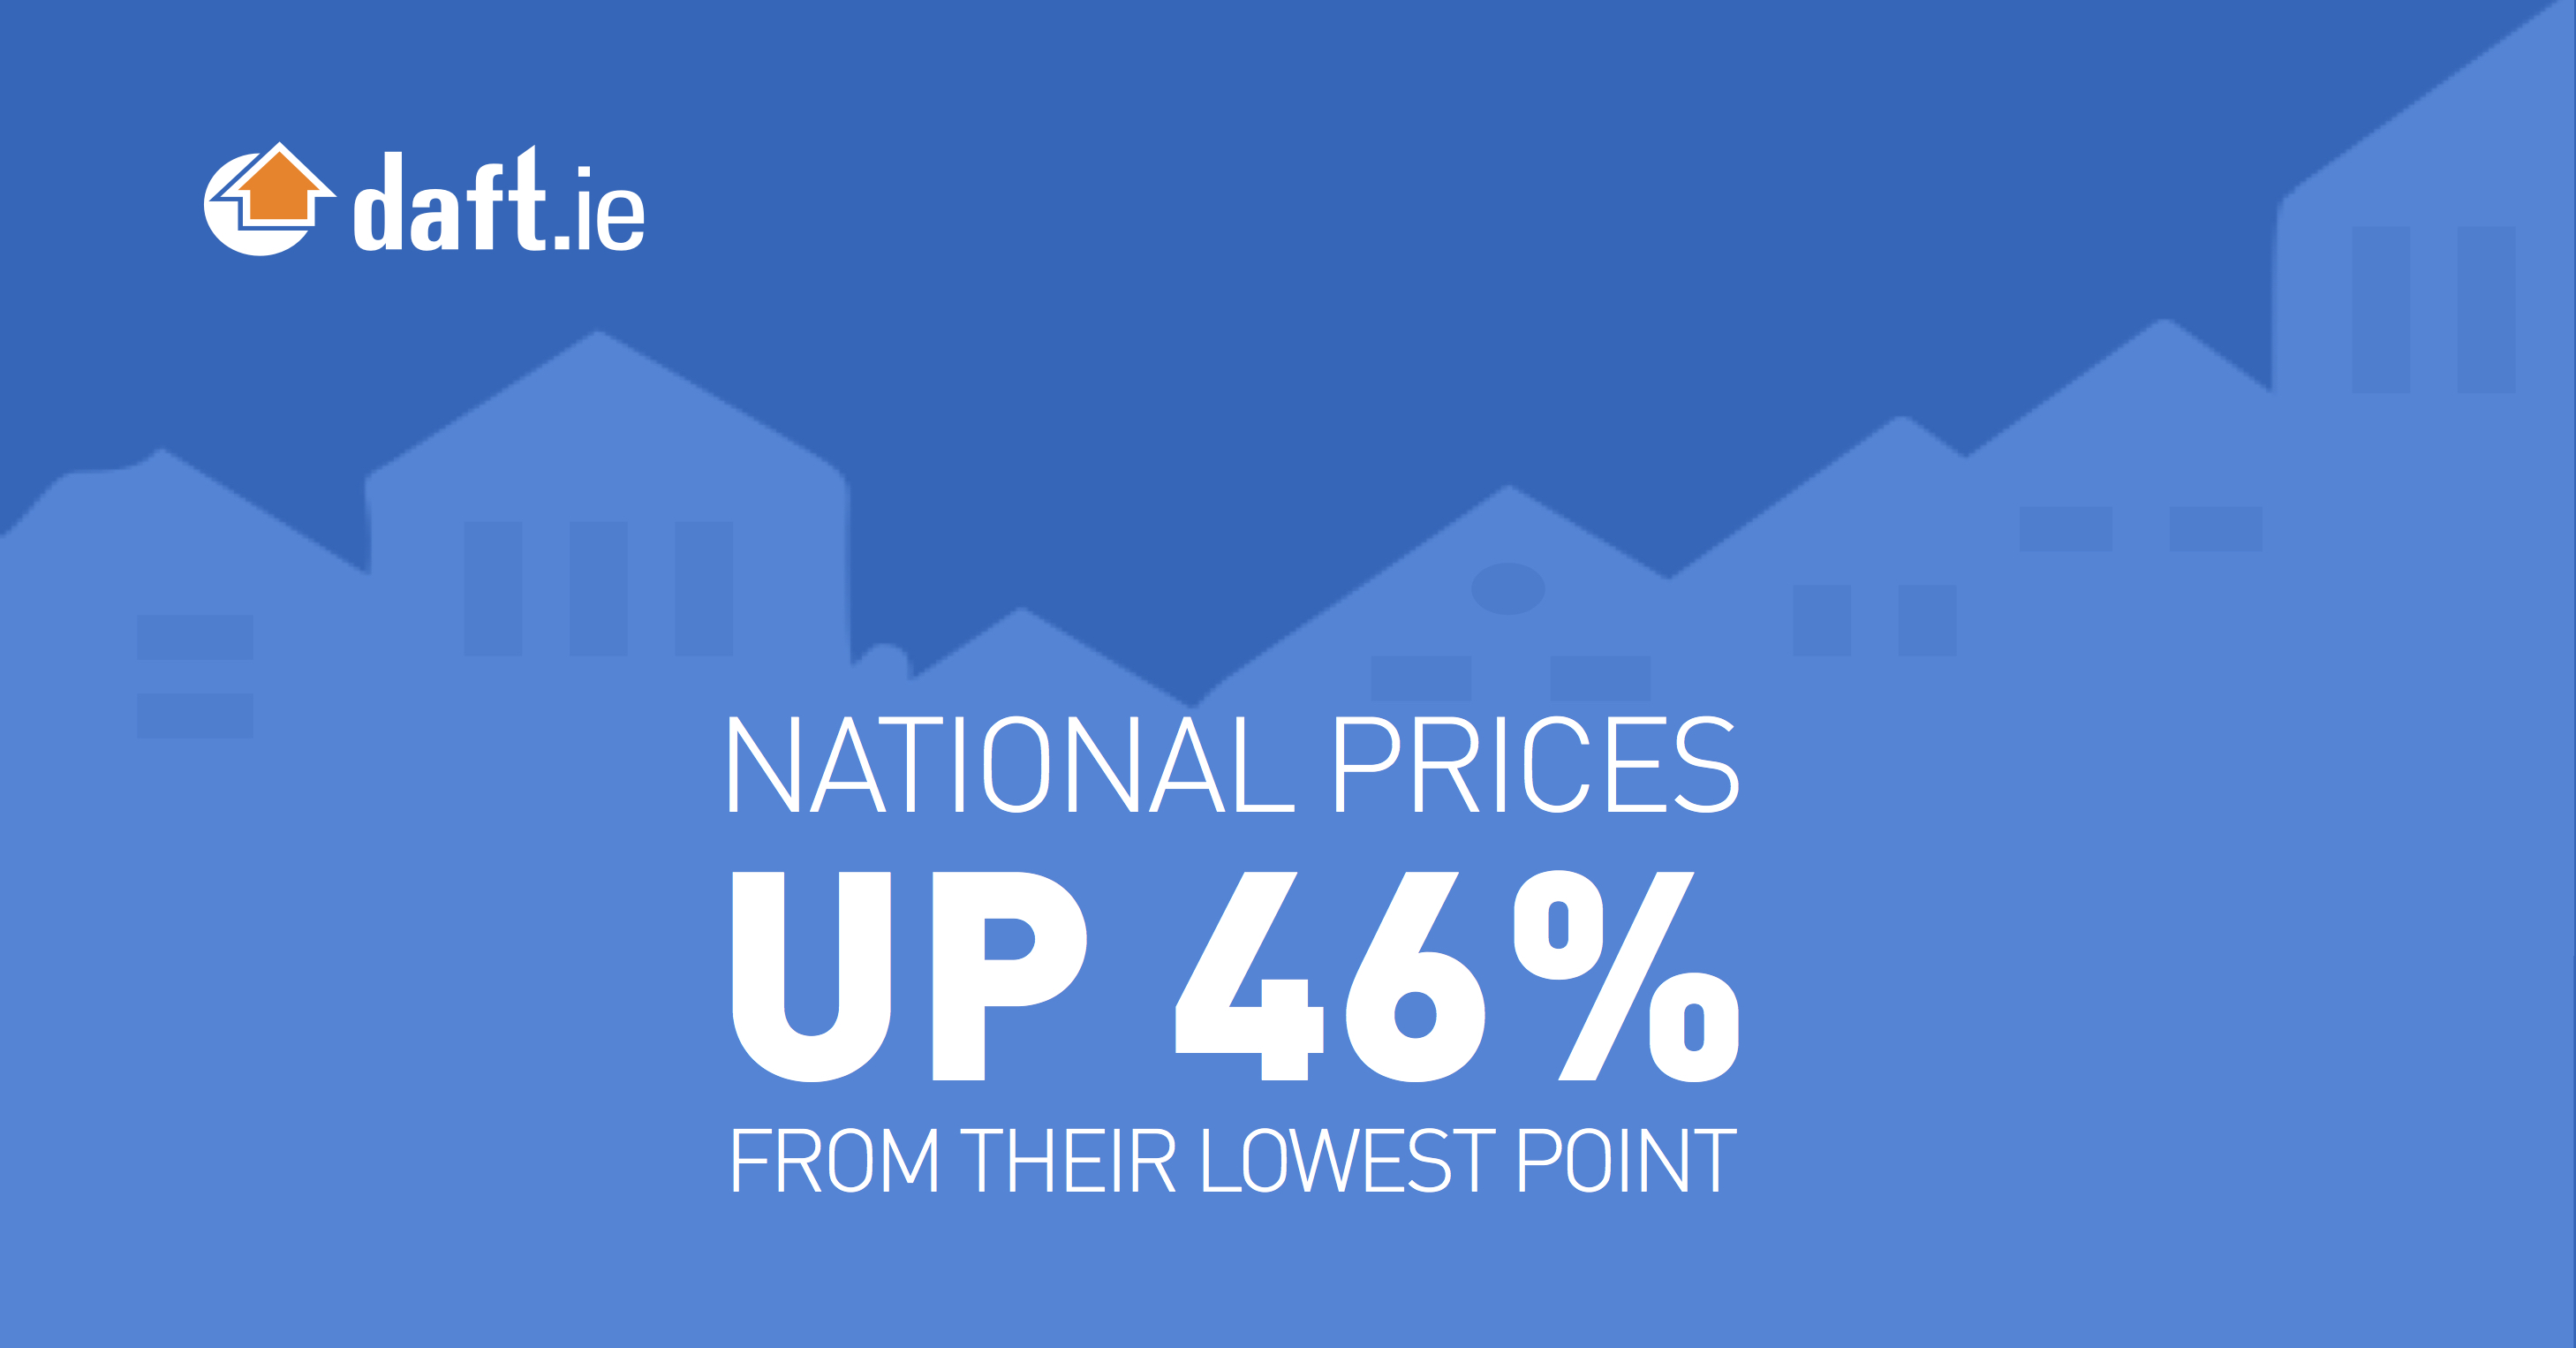 National prices up 46% from their lowest point